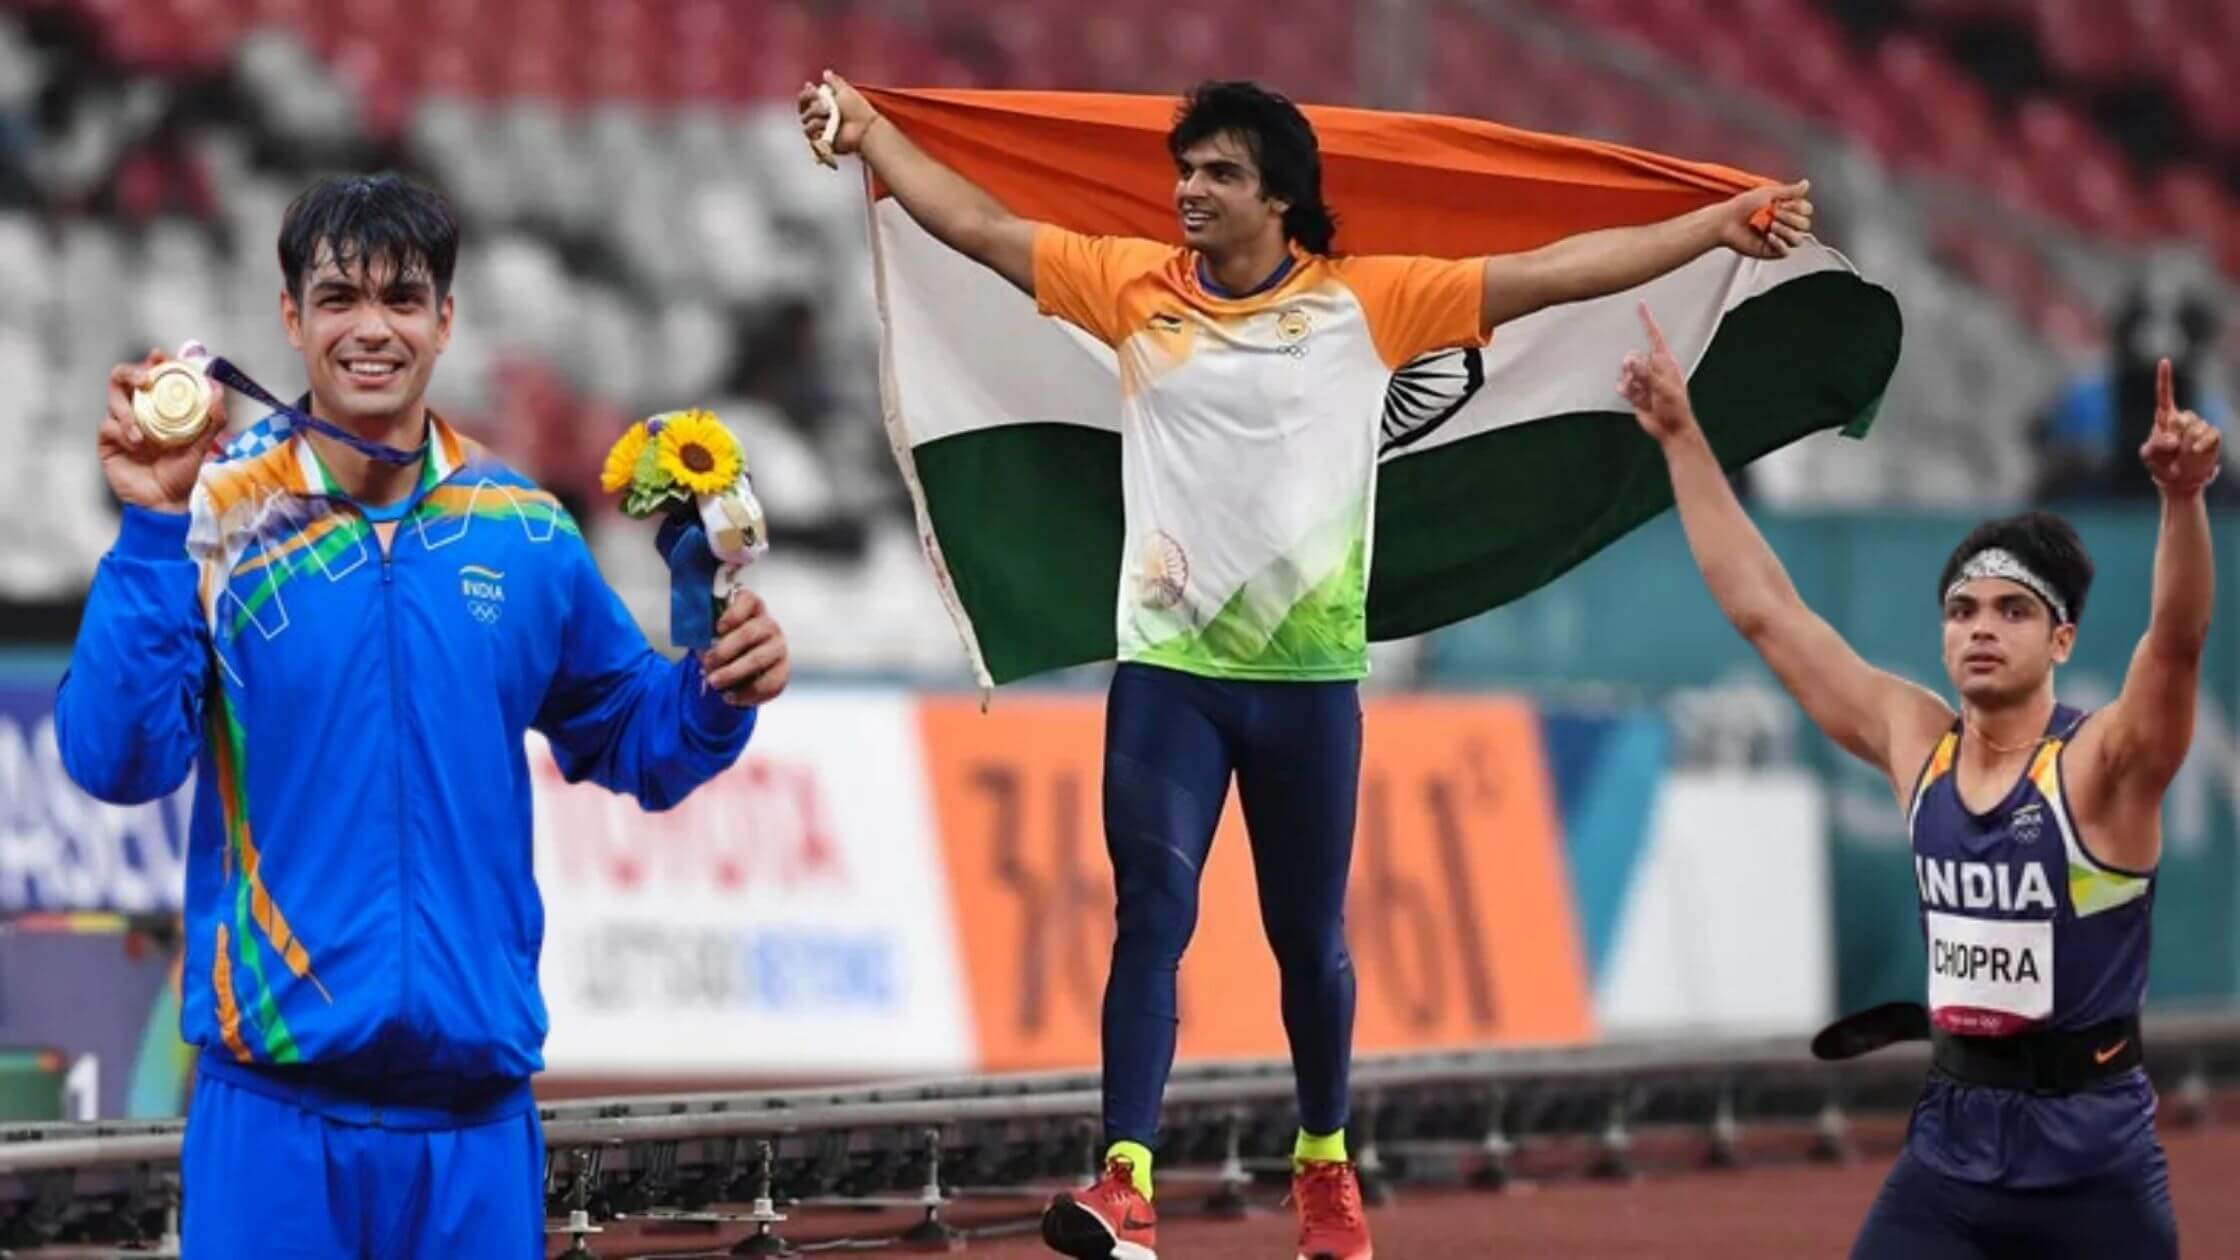 You are currently viewing Neeraj Chopra Biography, Records, Girlfriend, Family, Medals & Much More